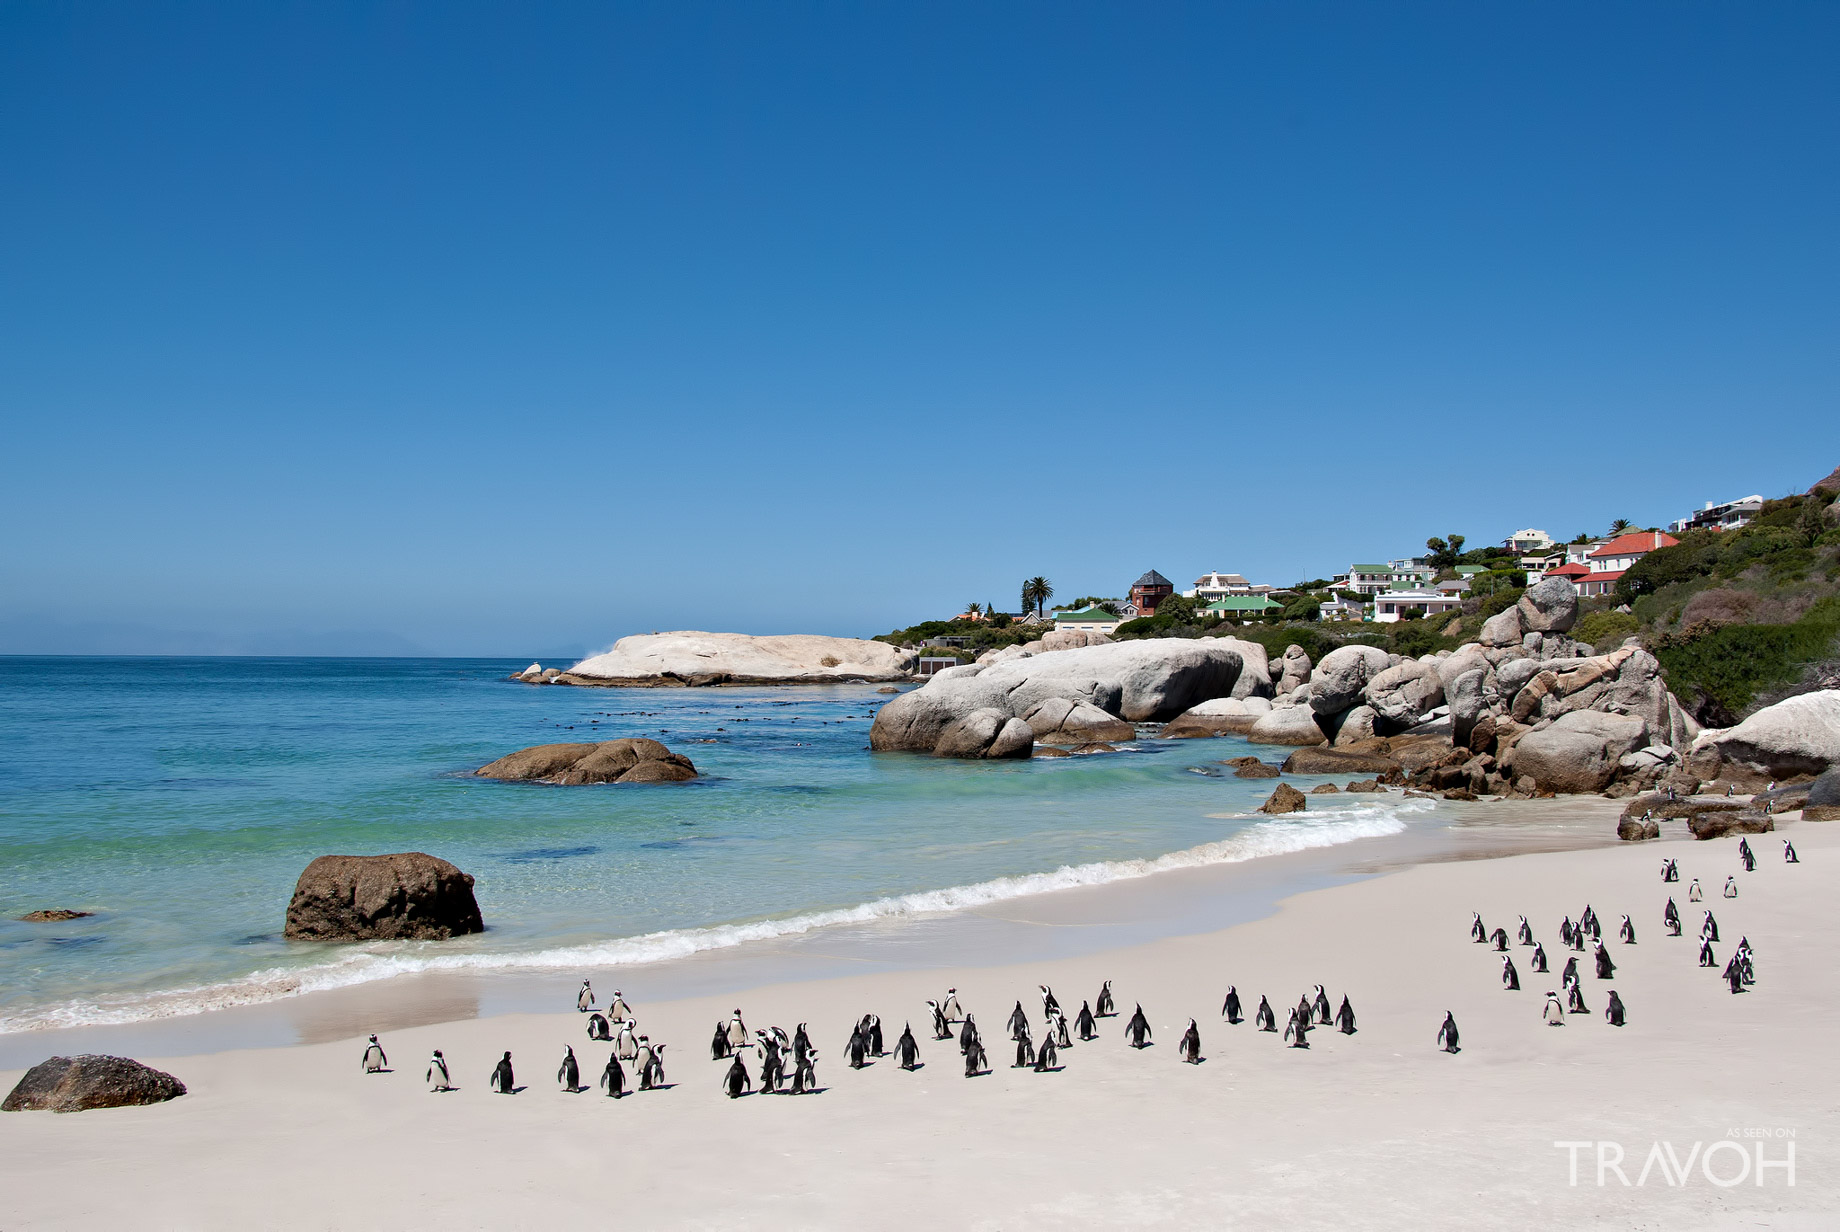 Boulders Beach - Exploring 10 of the Top Beaches in Cape Town, South Africa